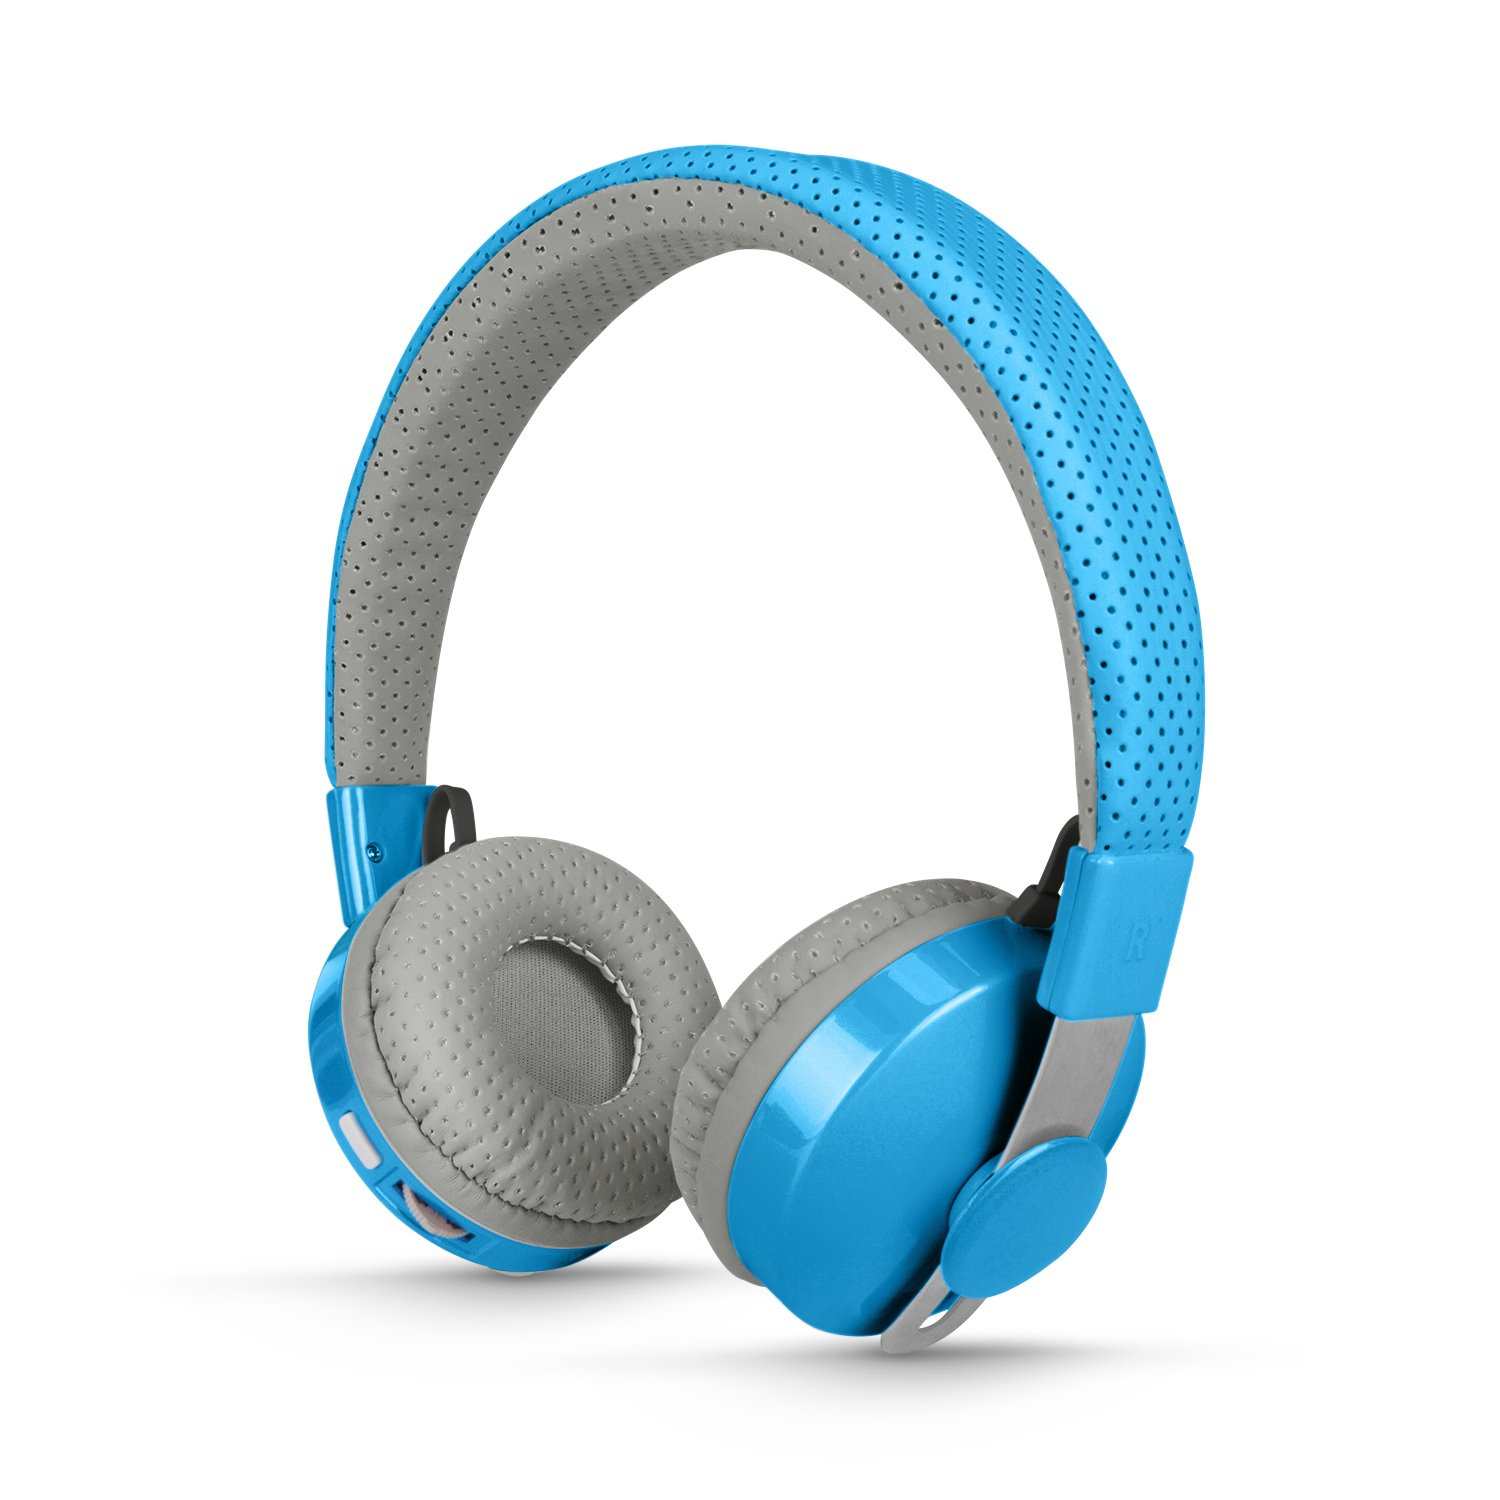 When it comes to kids headphones, LilGadgets is one of the best brands around.